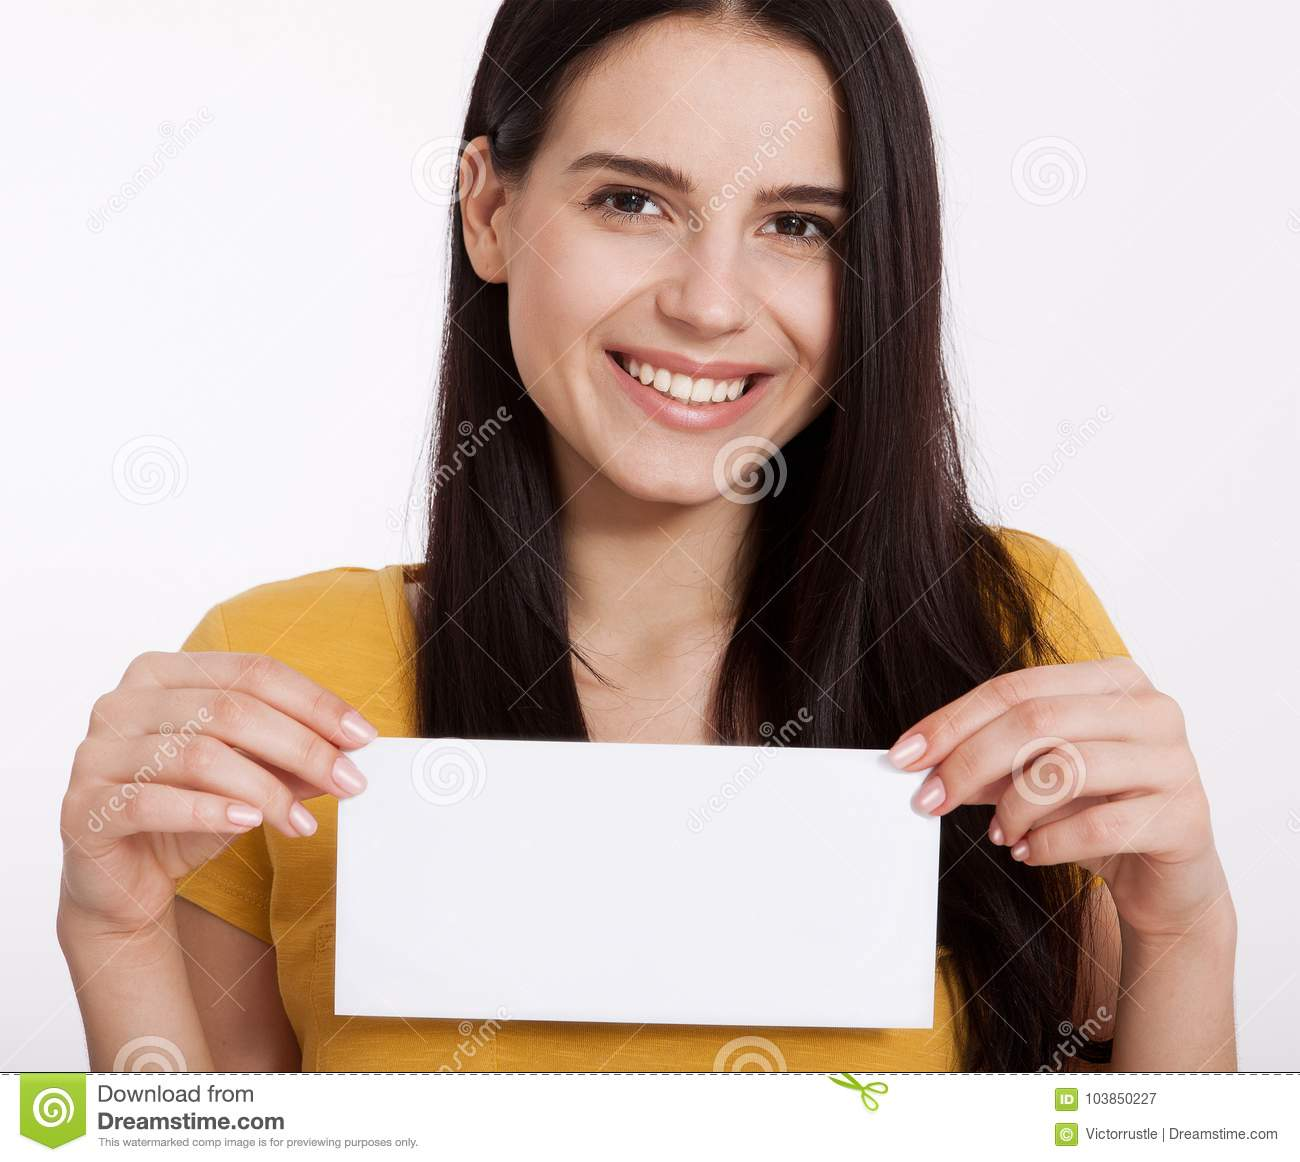 Your text here. Pretty young woman holding empty blank board. Studio portrait on white background. Mockup for design